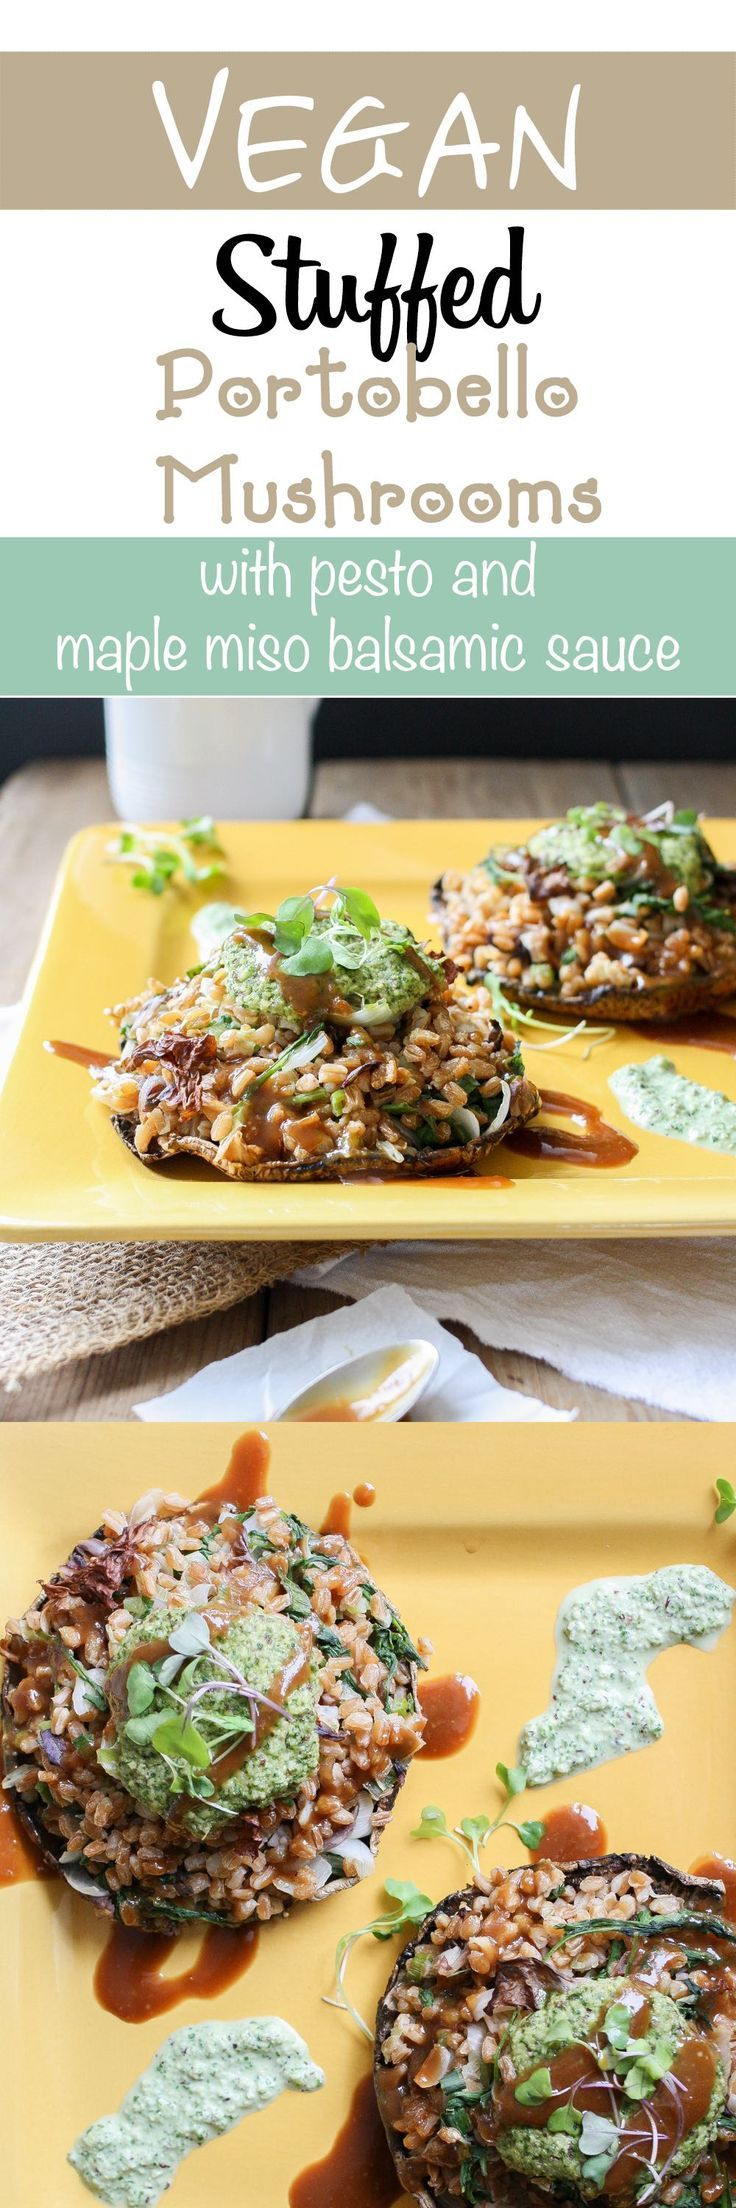 Italian Farro Stuffed Portobellos with Pesto and Balsamic Sauce